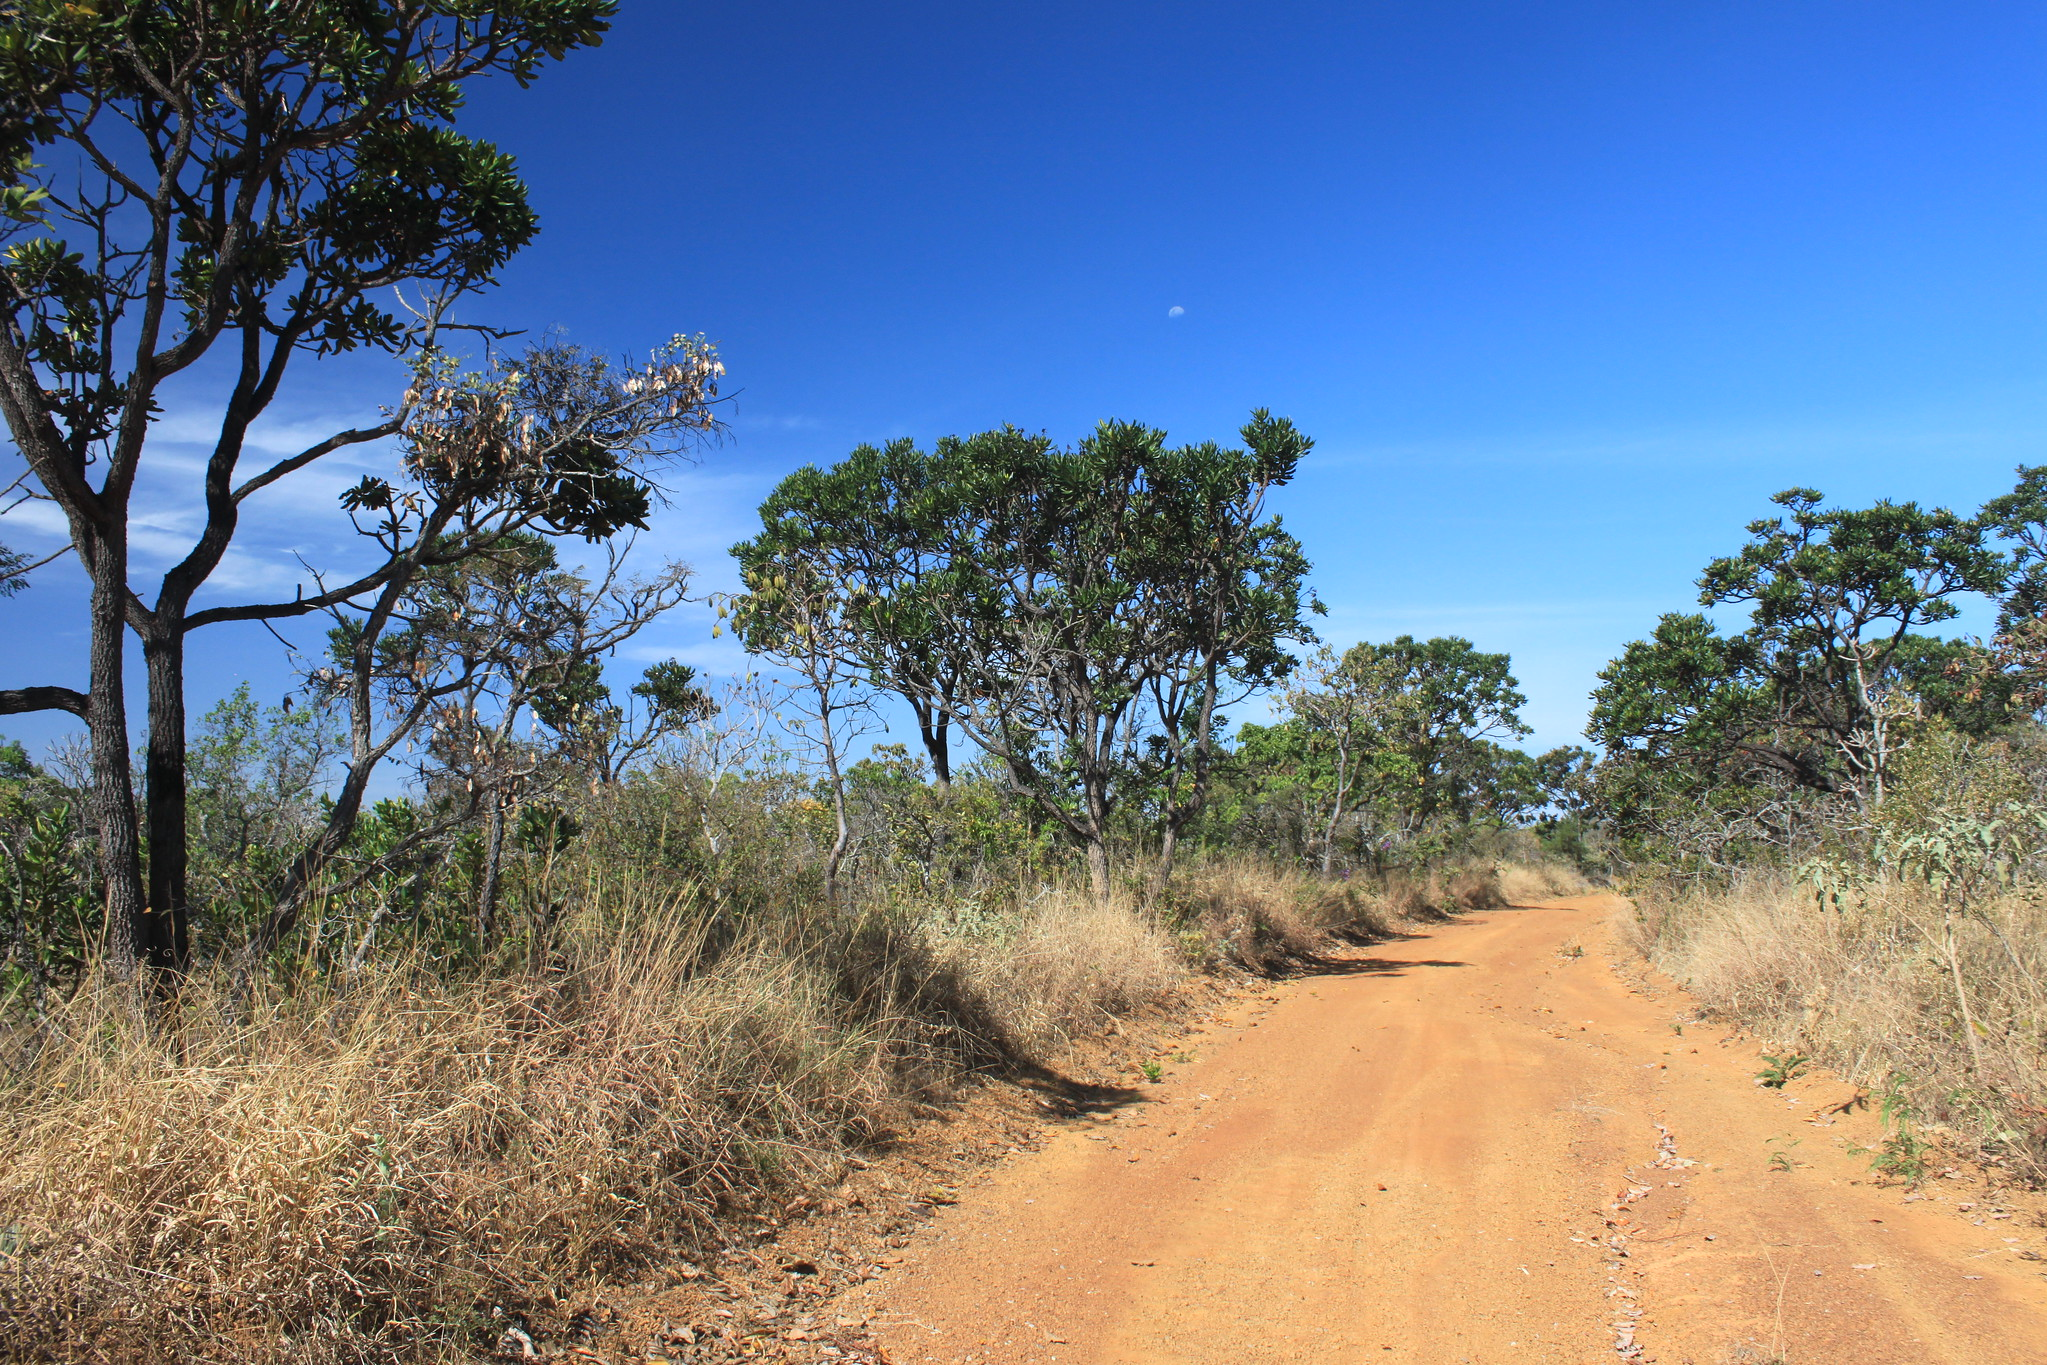 Cerrado vegetation at Daterra